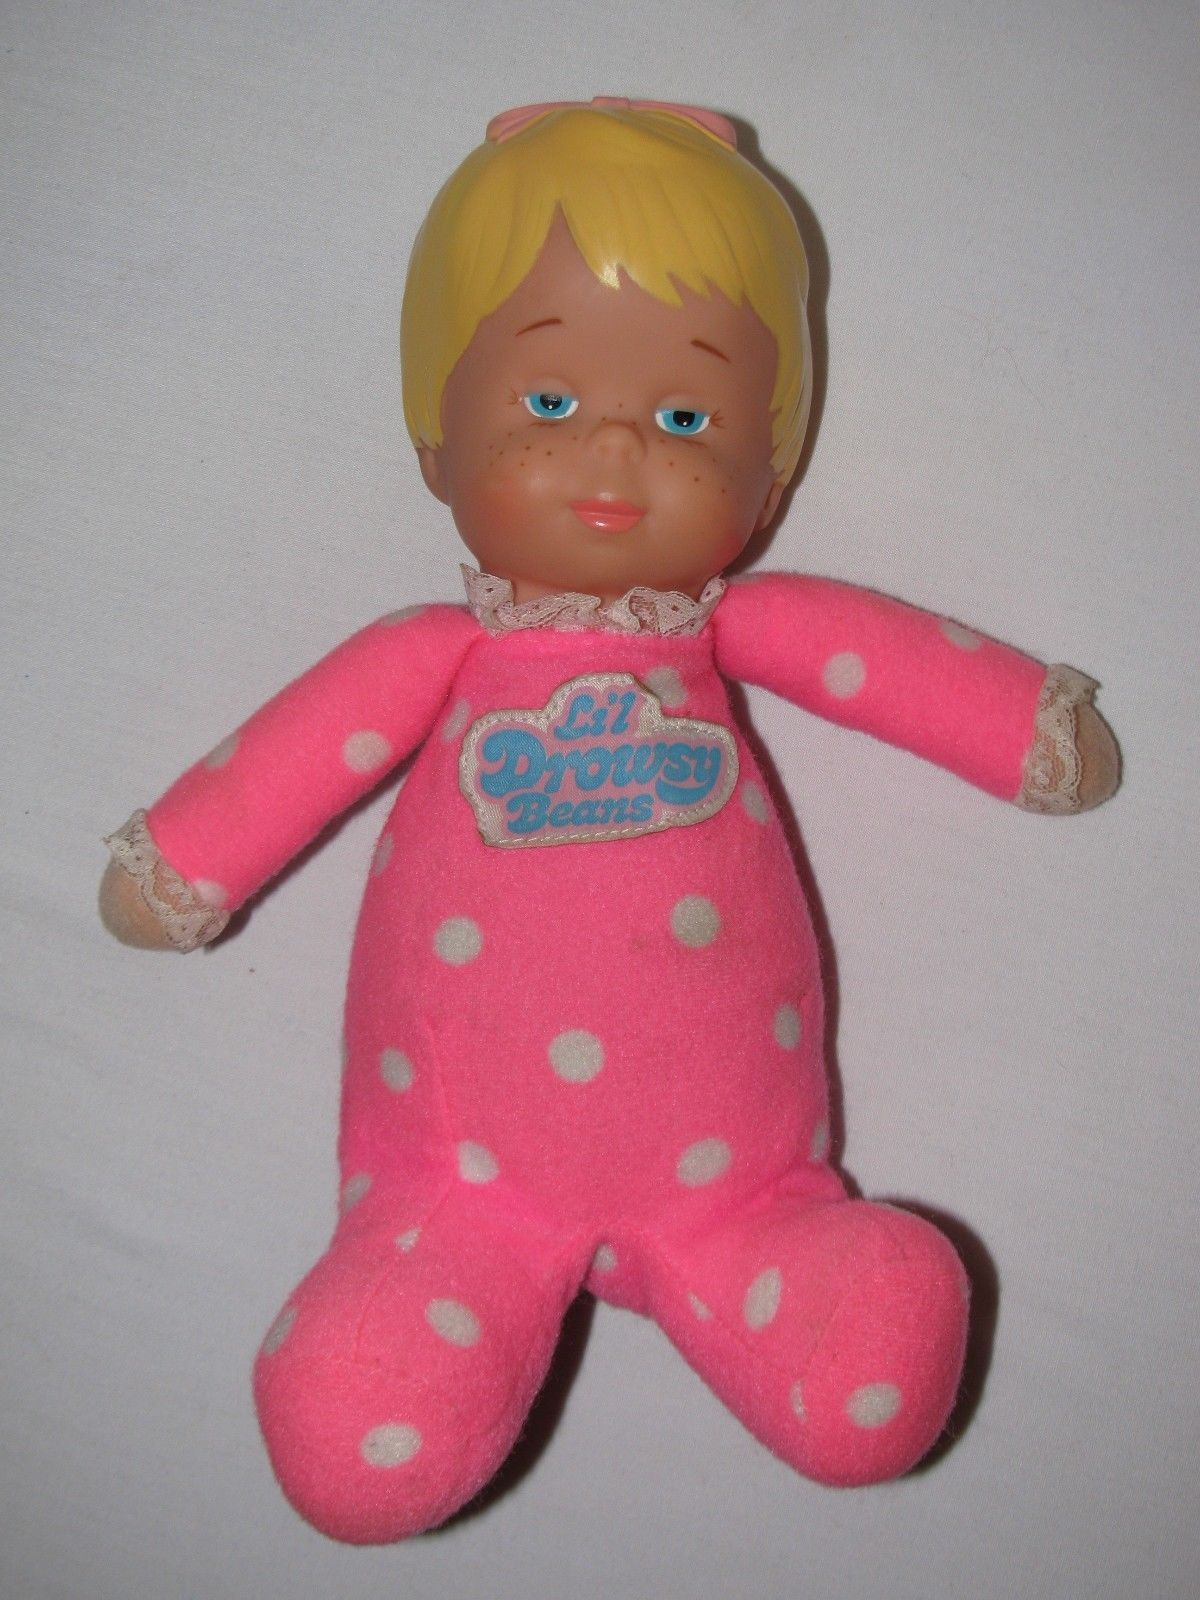 Details About Vintage 1982 Mattel Lil Drowsy Beans Doll